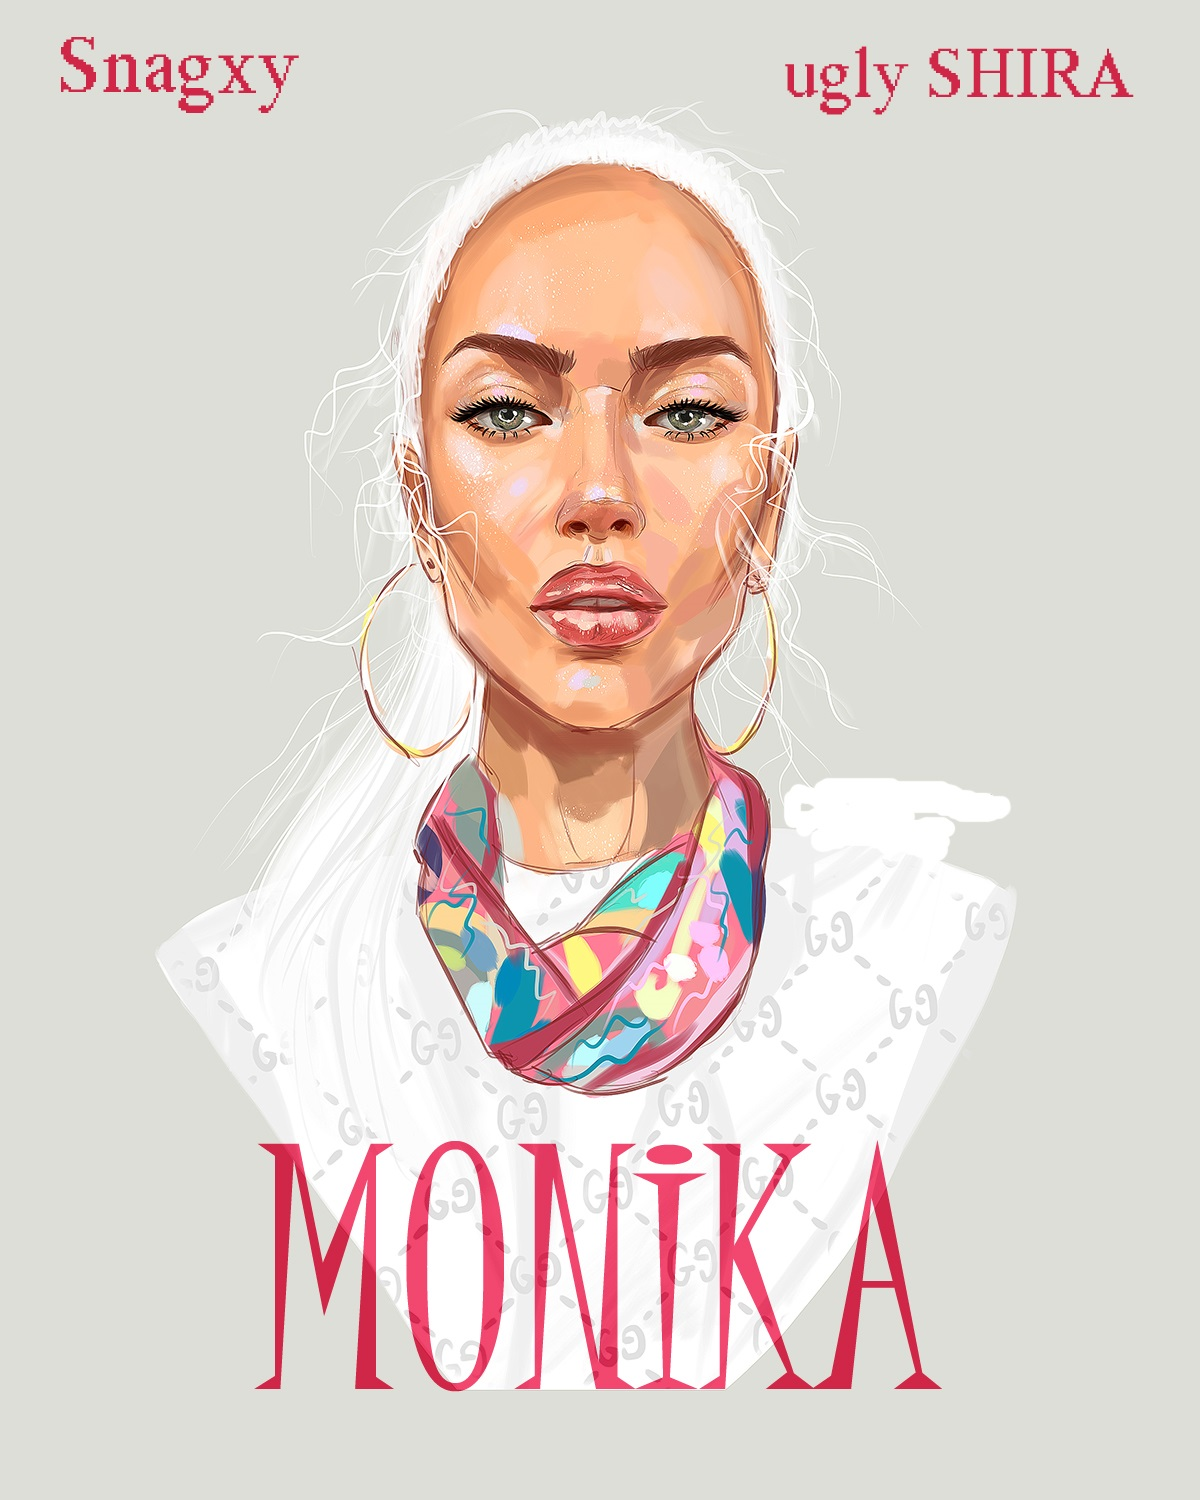 Fresh Music: Snagxy Ft. Ugly Shira – Monika